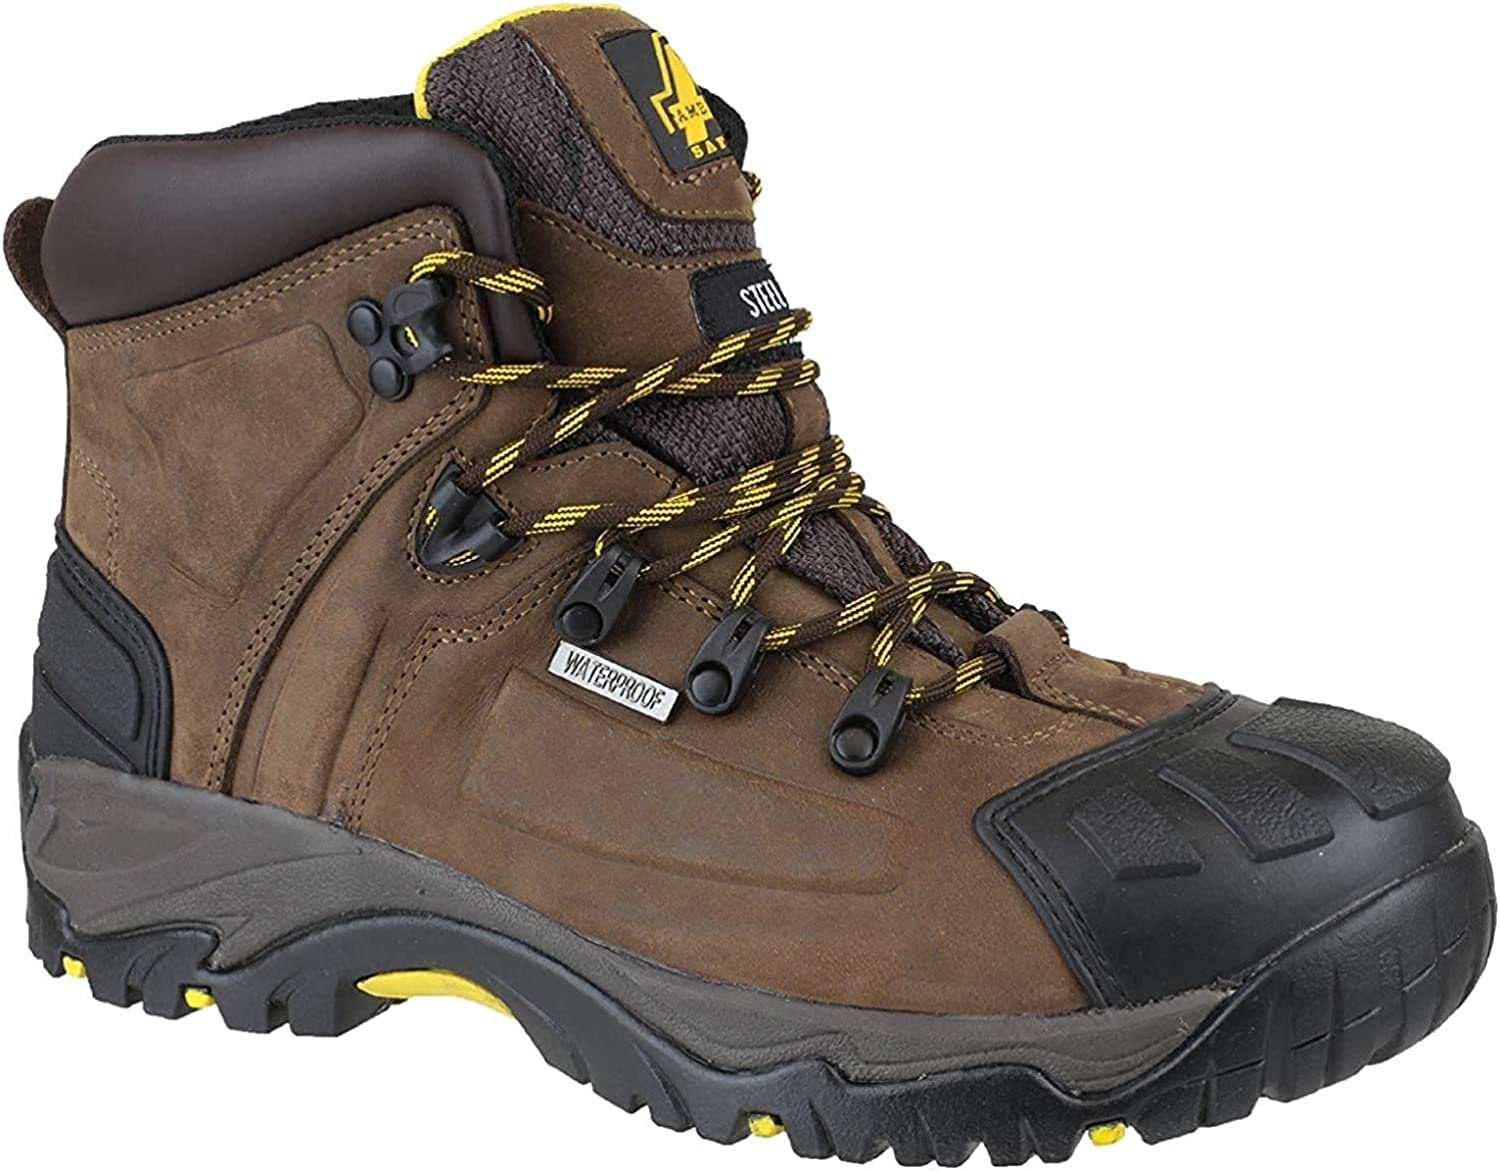 Store Amblers Safety Mens FS39 Max 53% OFF Br Boots Waterproof Leather